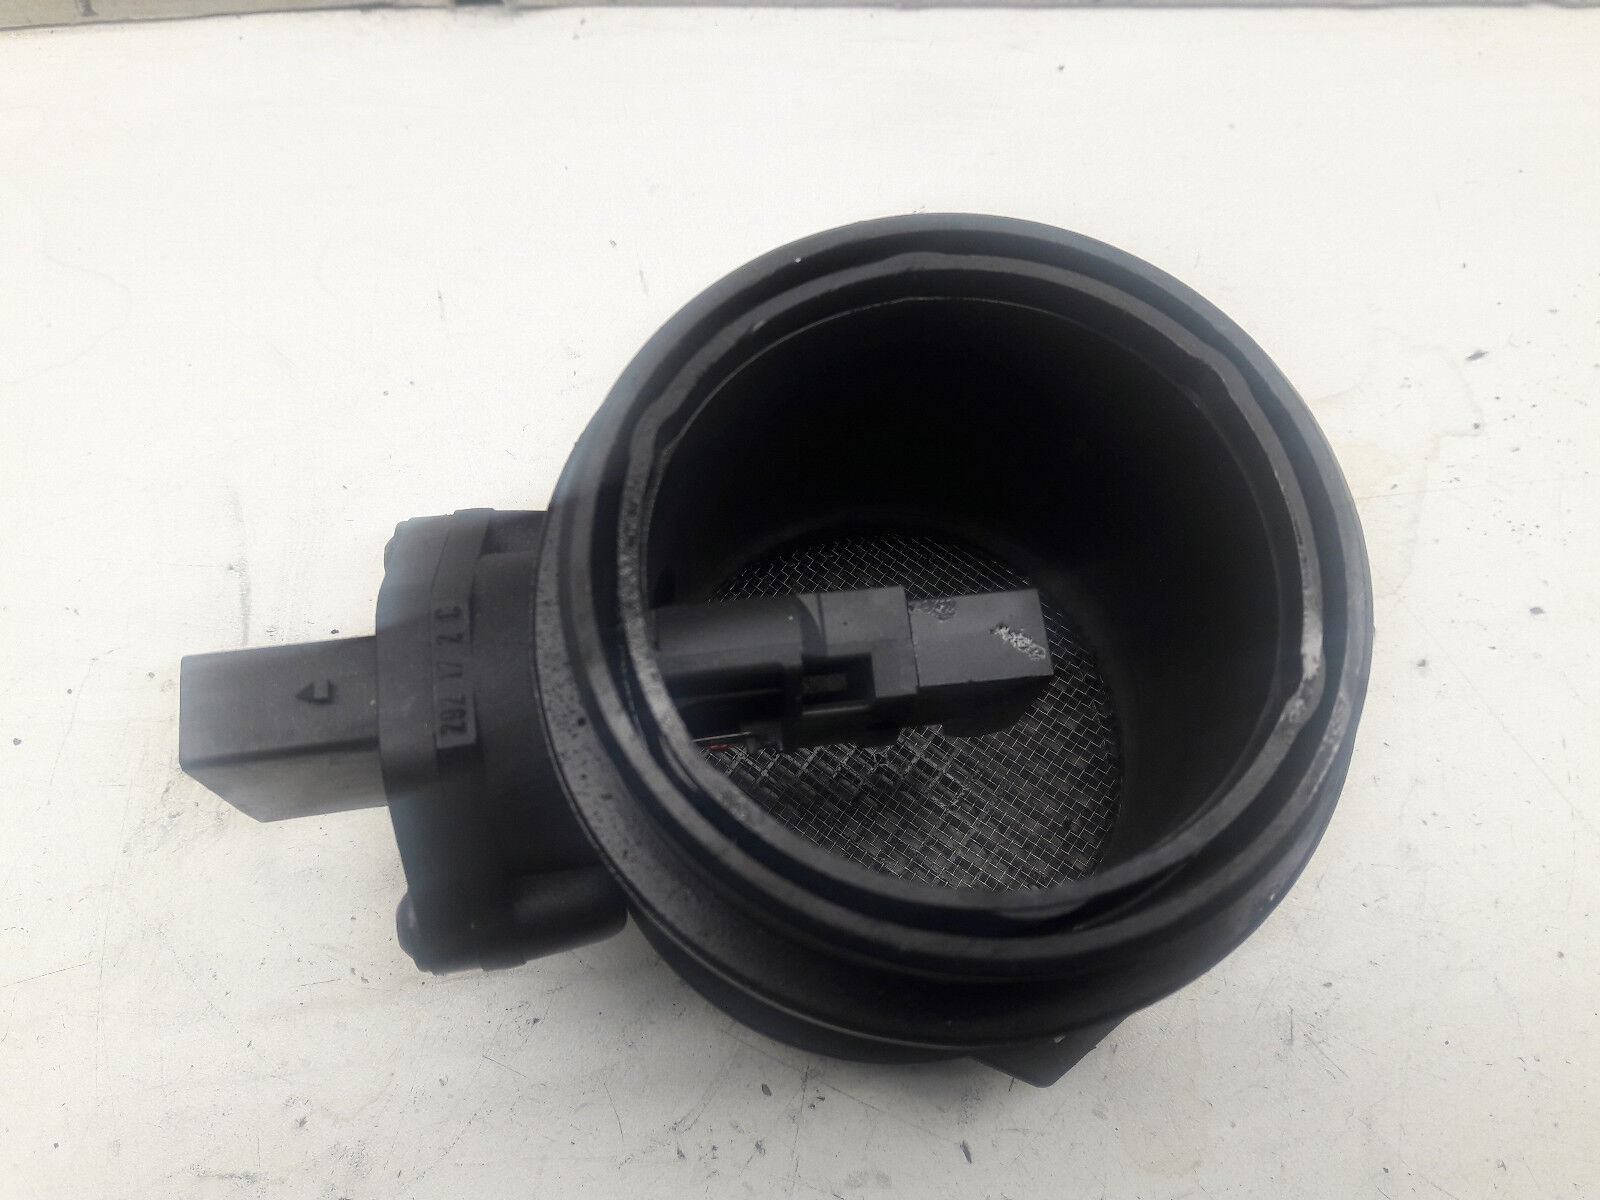 Used Mercedes Benz Fuel Pumps For Sale Page 55 1998 Ml320 Filter 2006 C Class Mafler Mass Airflow Sensor Housing 0280217515 As30